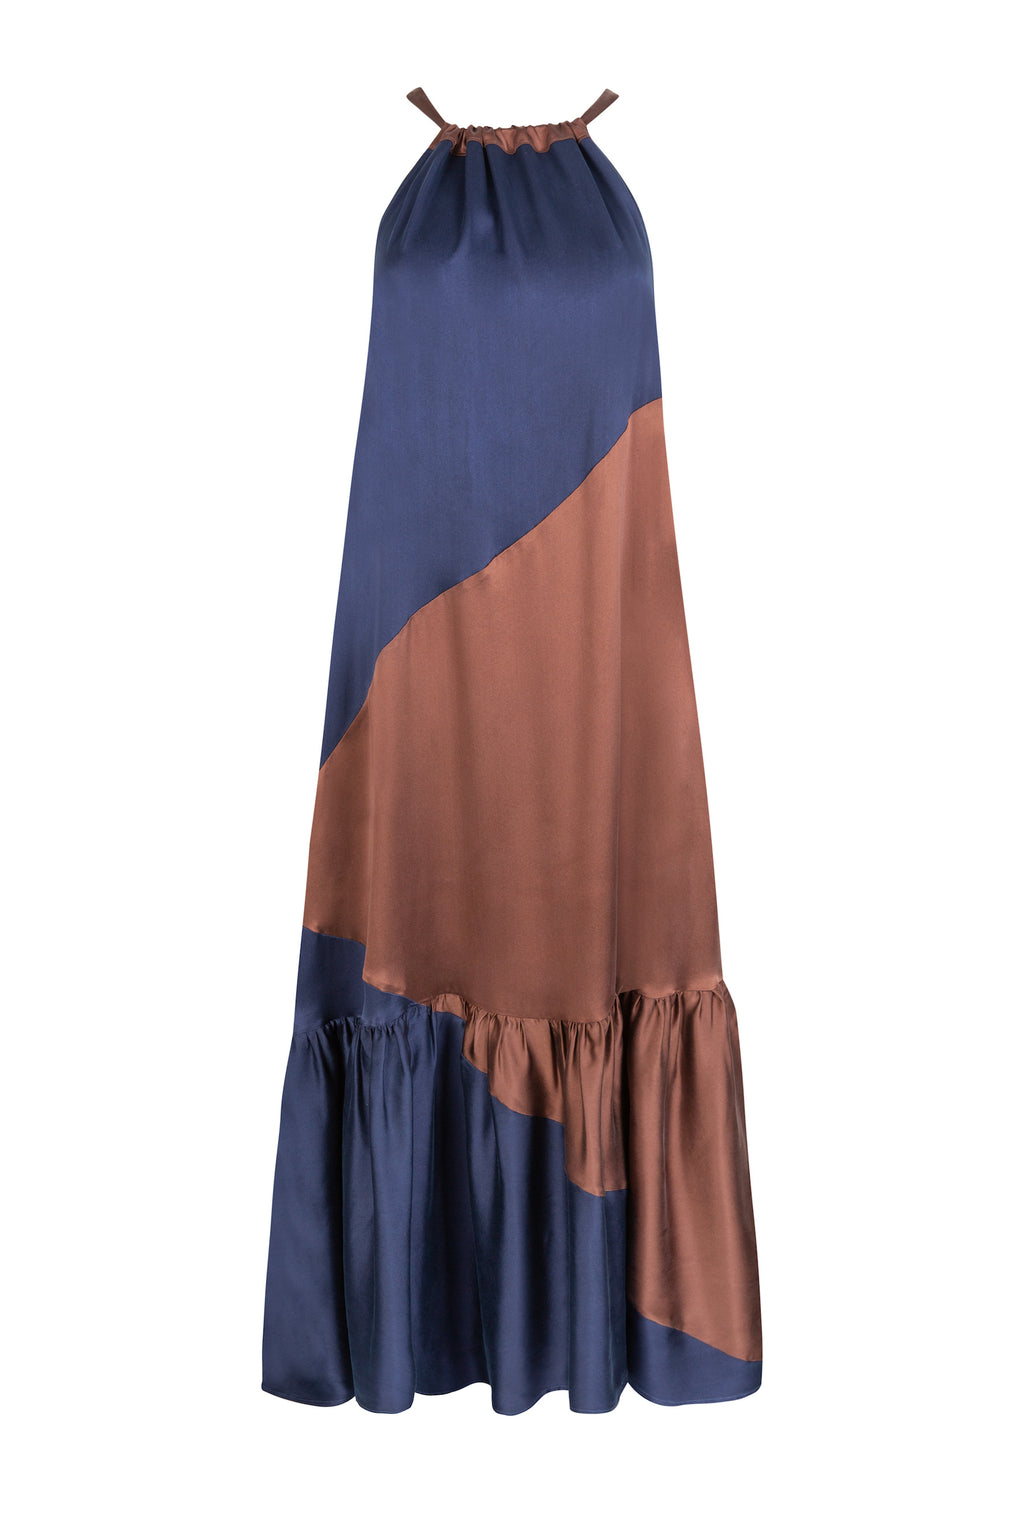 ASCENO IBIZA BROWN & NAVY SILK TWILL DRESS